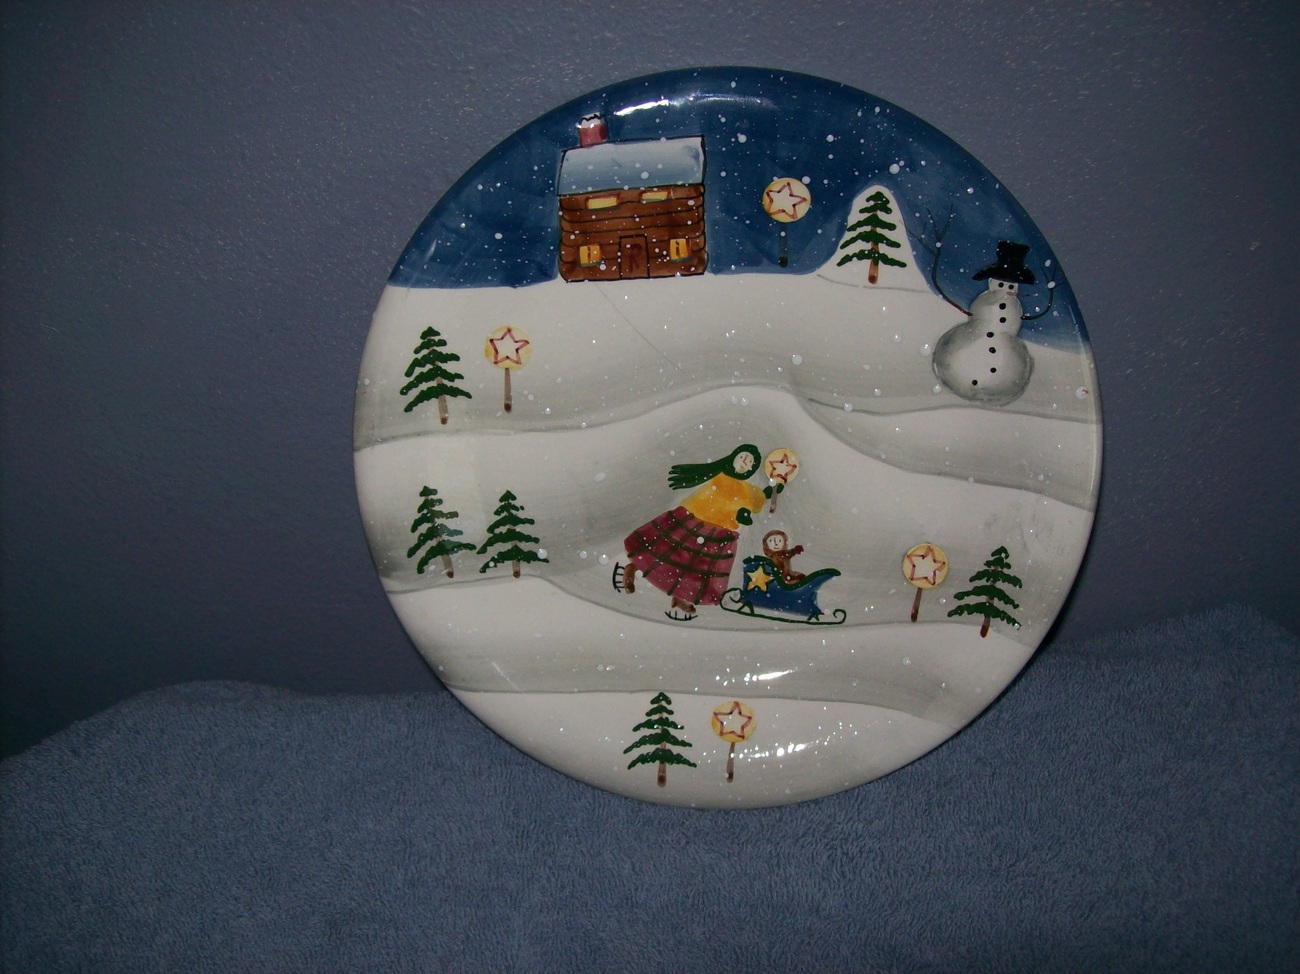 Decorative Christmas Plate by Atol Endres & Decorative Christmas Plate by Atol Endres and 50 similar items